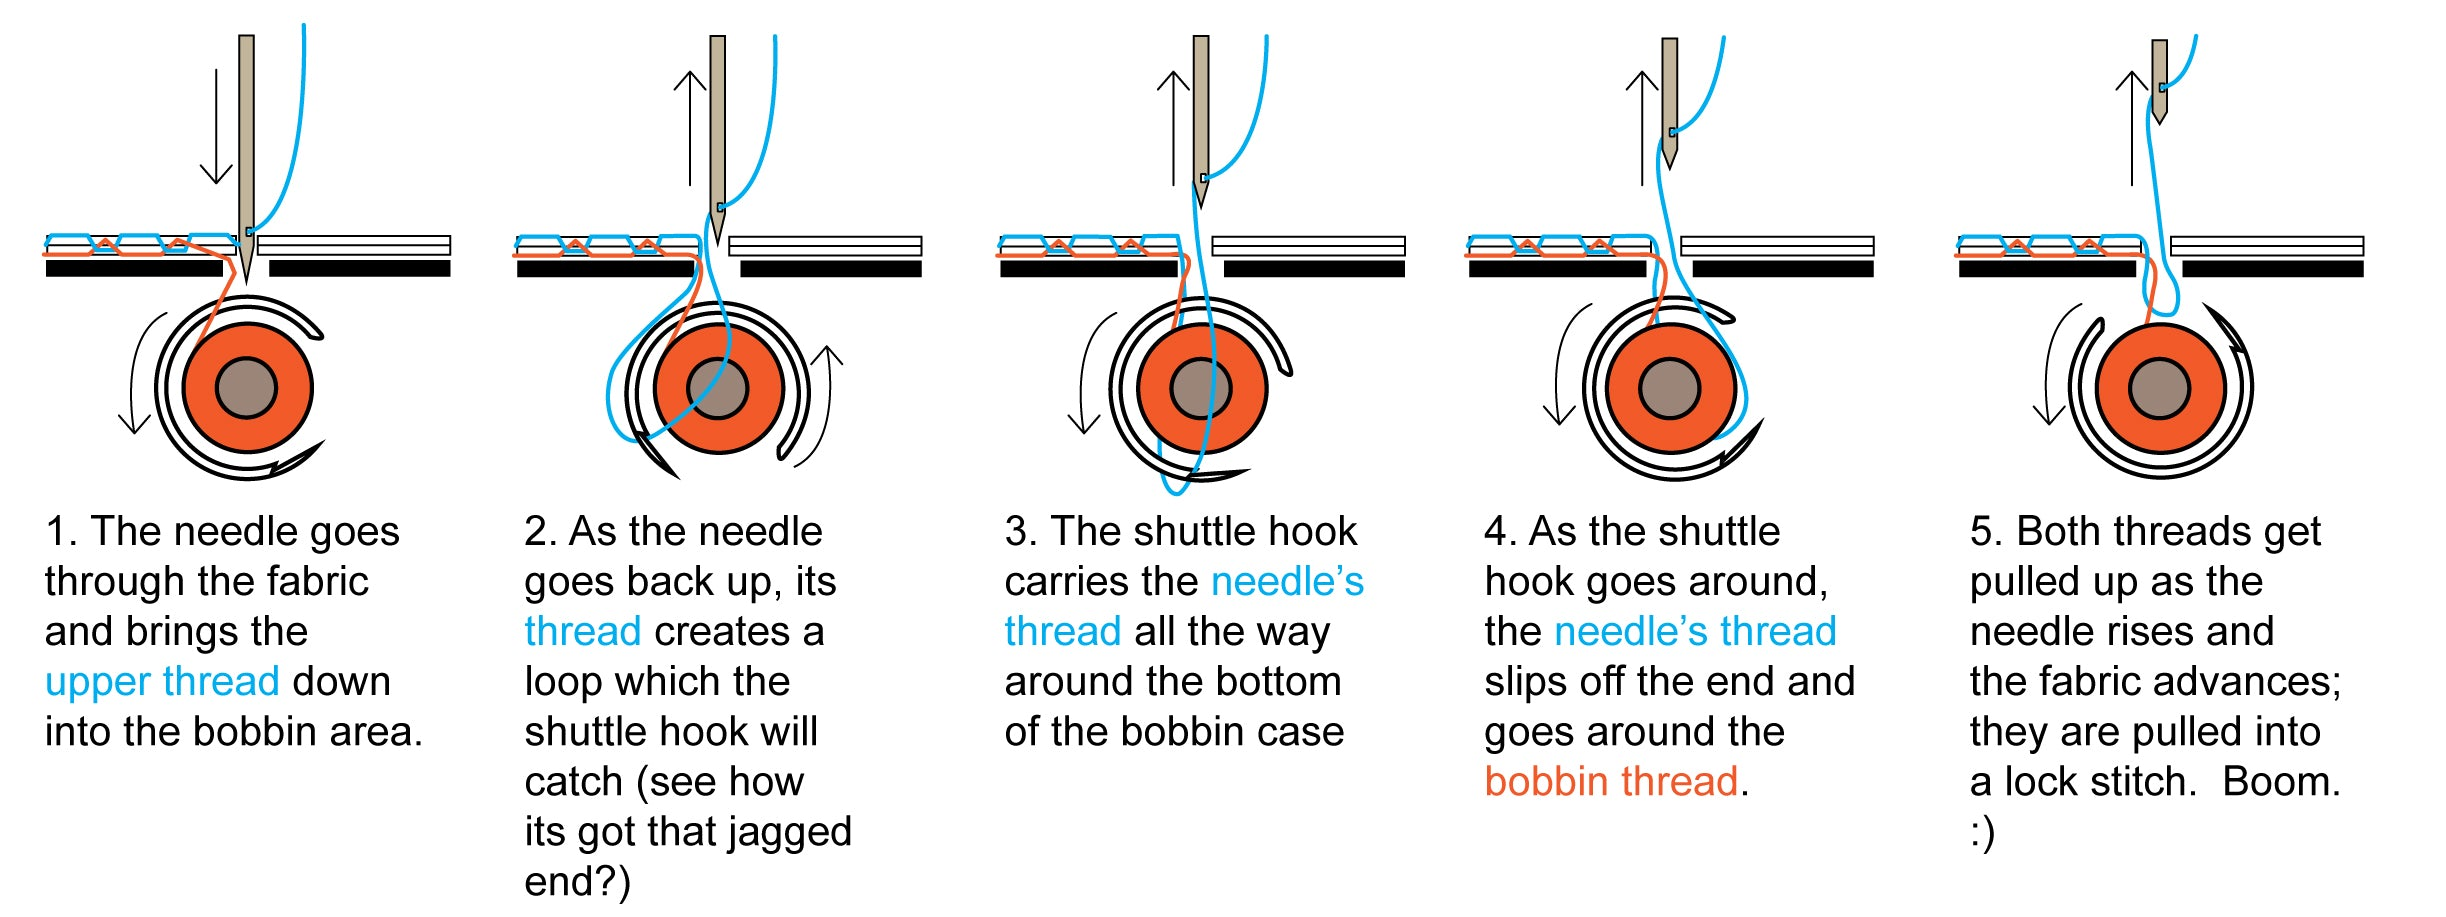 Whoa How Does My Sewing Machine Do That La Vie En Orange Thread A Diagram Labeled The Needle And Bobbin Intertwine To Make Stitch